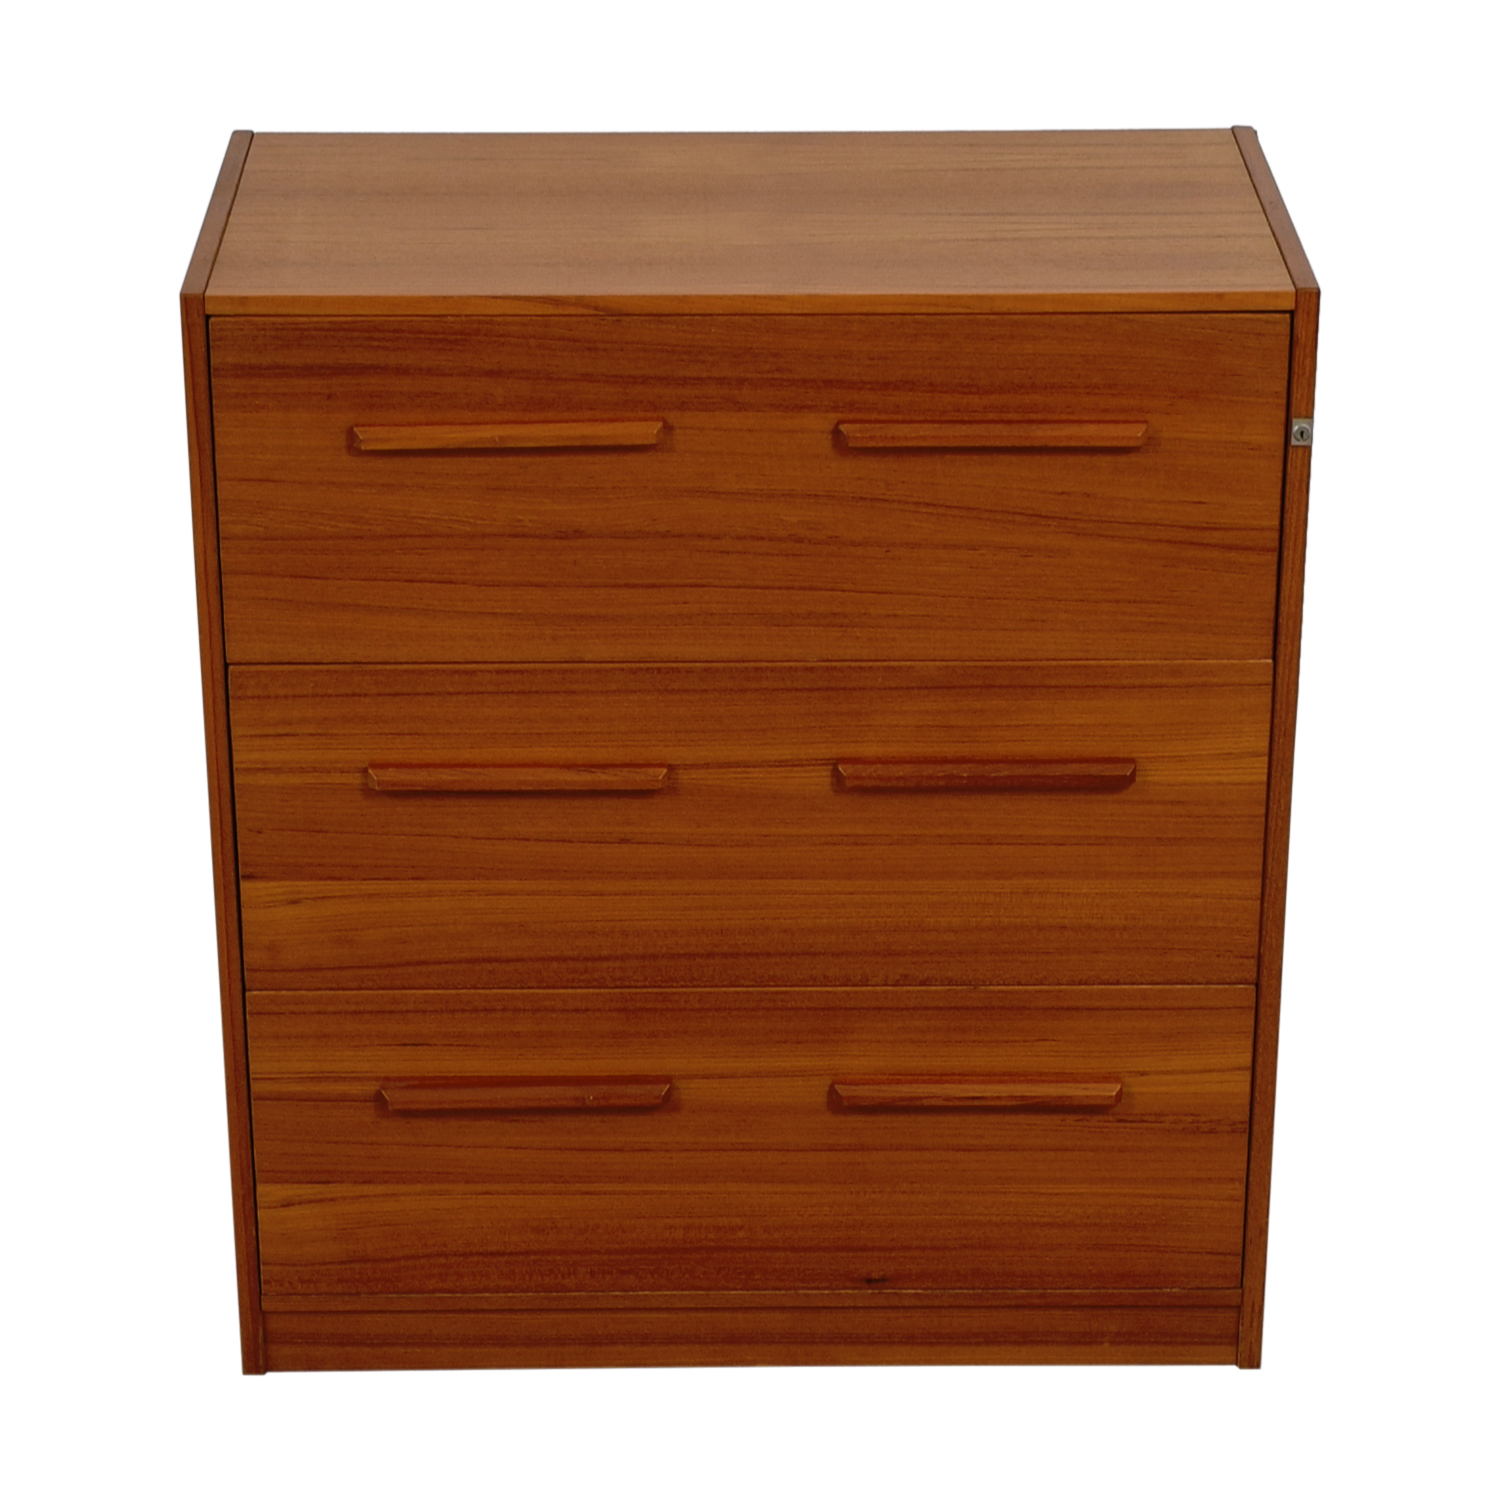 Danish File Cabinet second hand